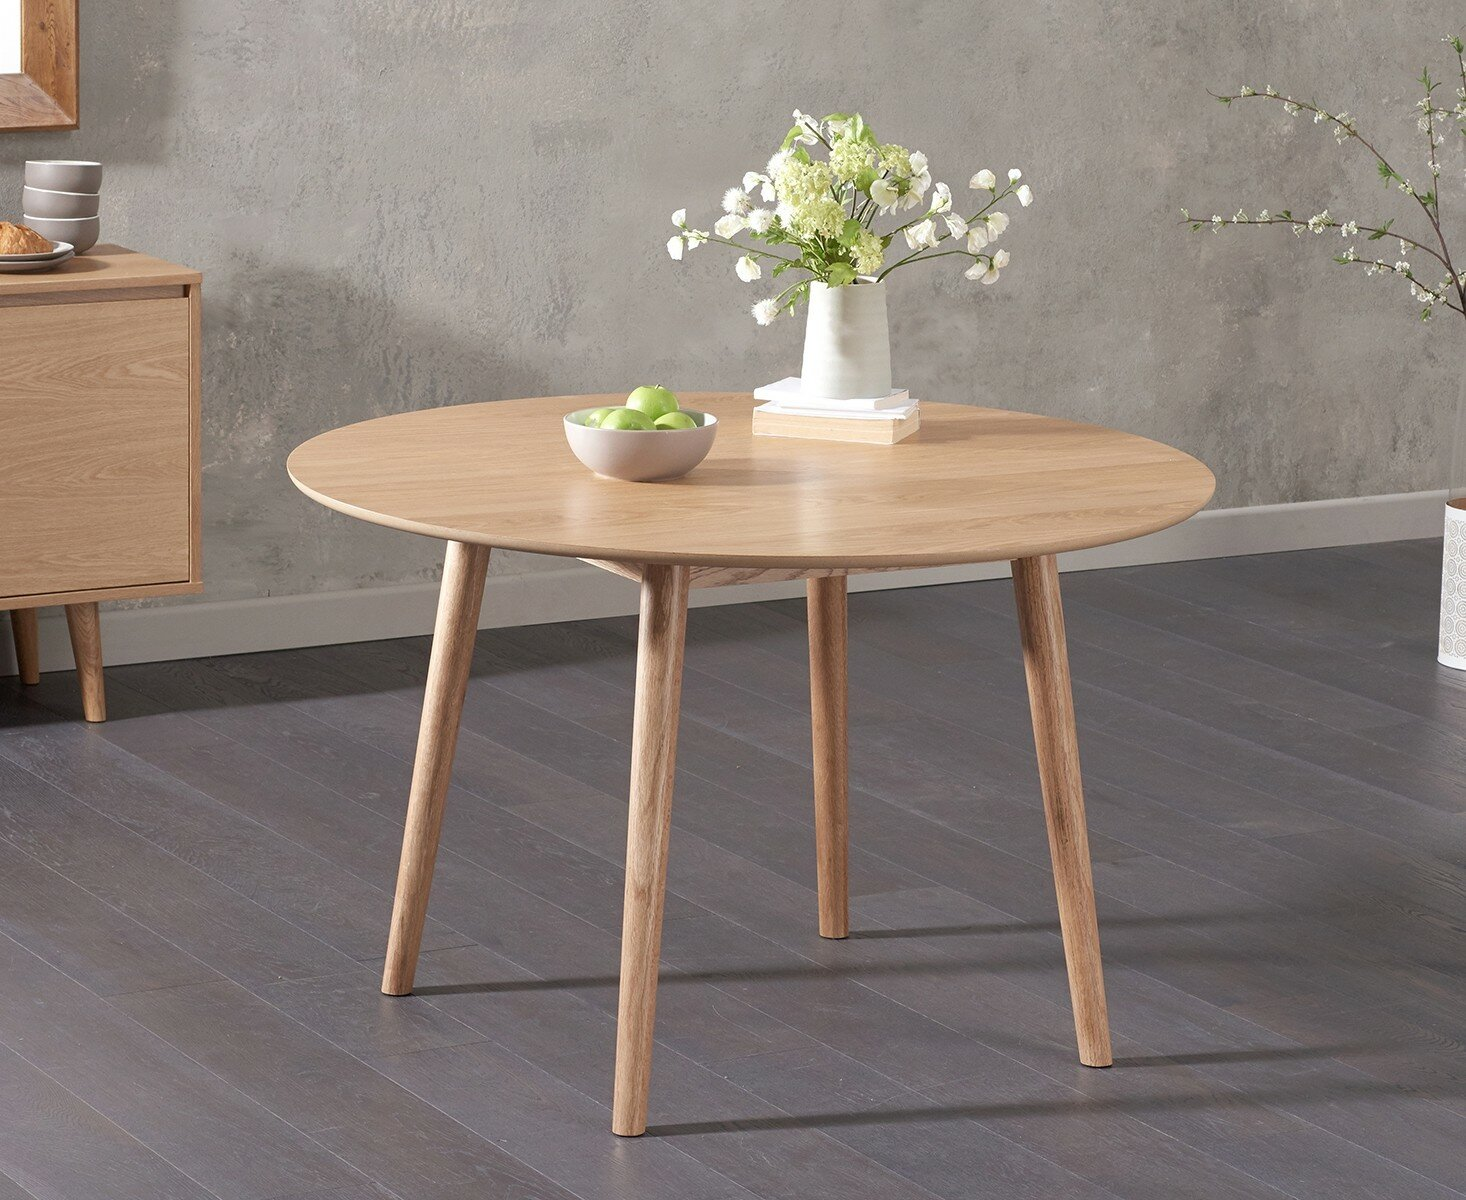 Corrigan Studio Erdem Round Oak Dining Table Wayfair Co Uk